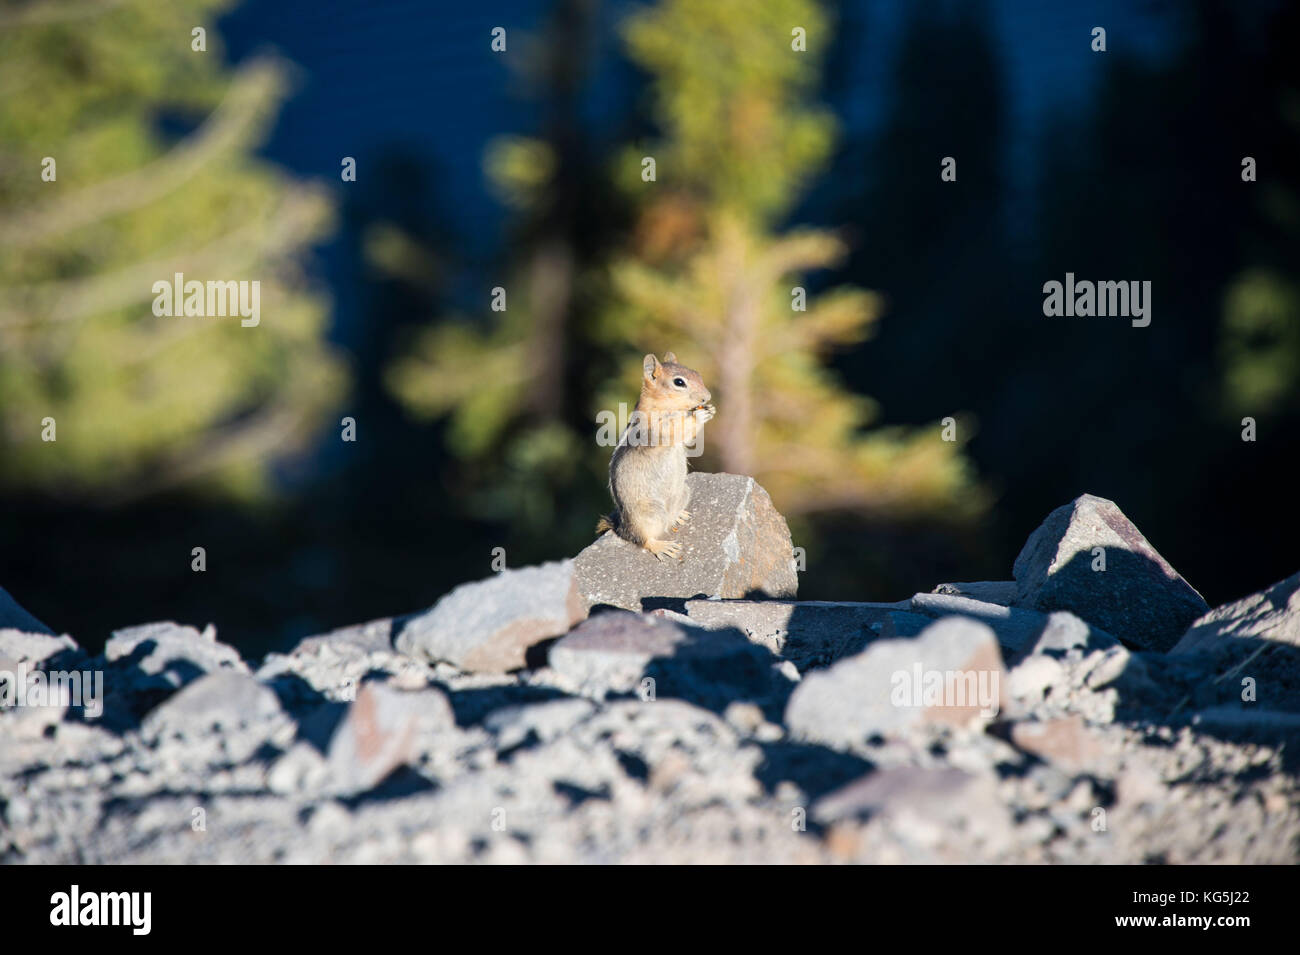 Chipmunk ( Sciuridae) in the Crater lake National Park, Oregon, USA - Stock Image